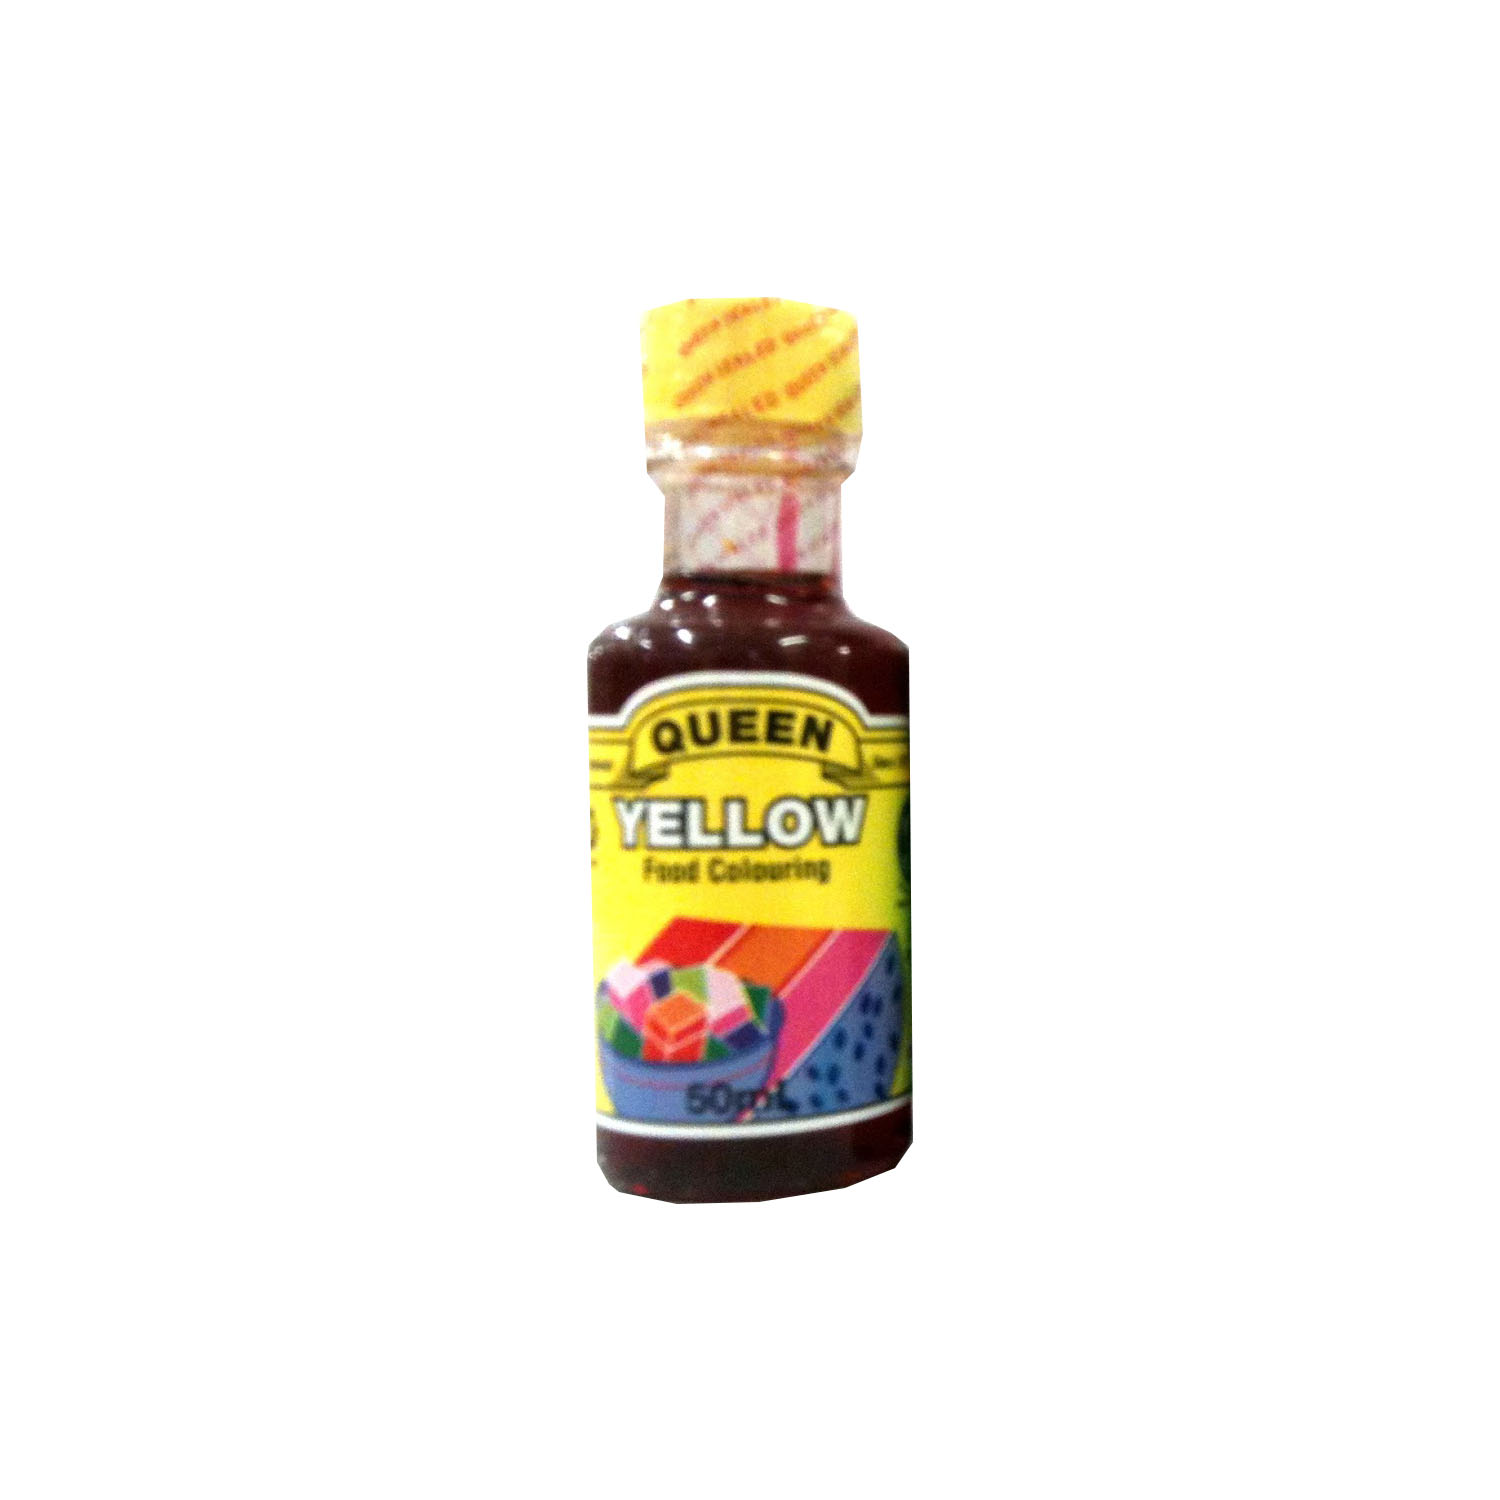 Queen Food Colouring - Yellow 50ml